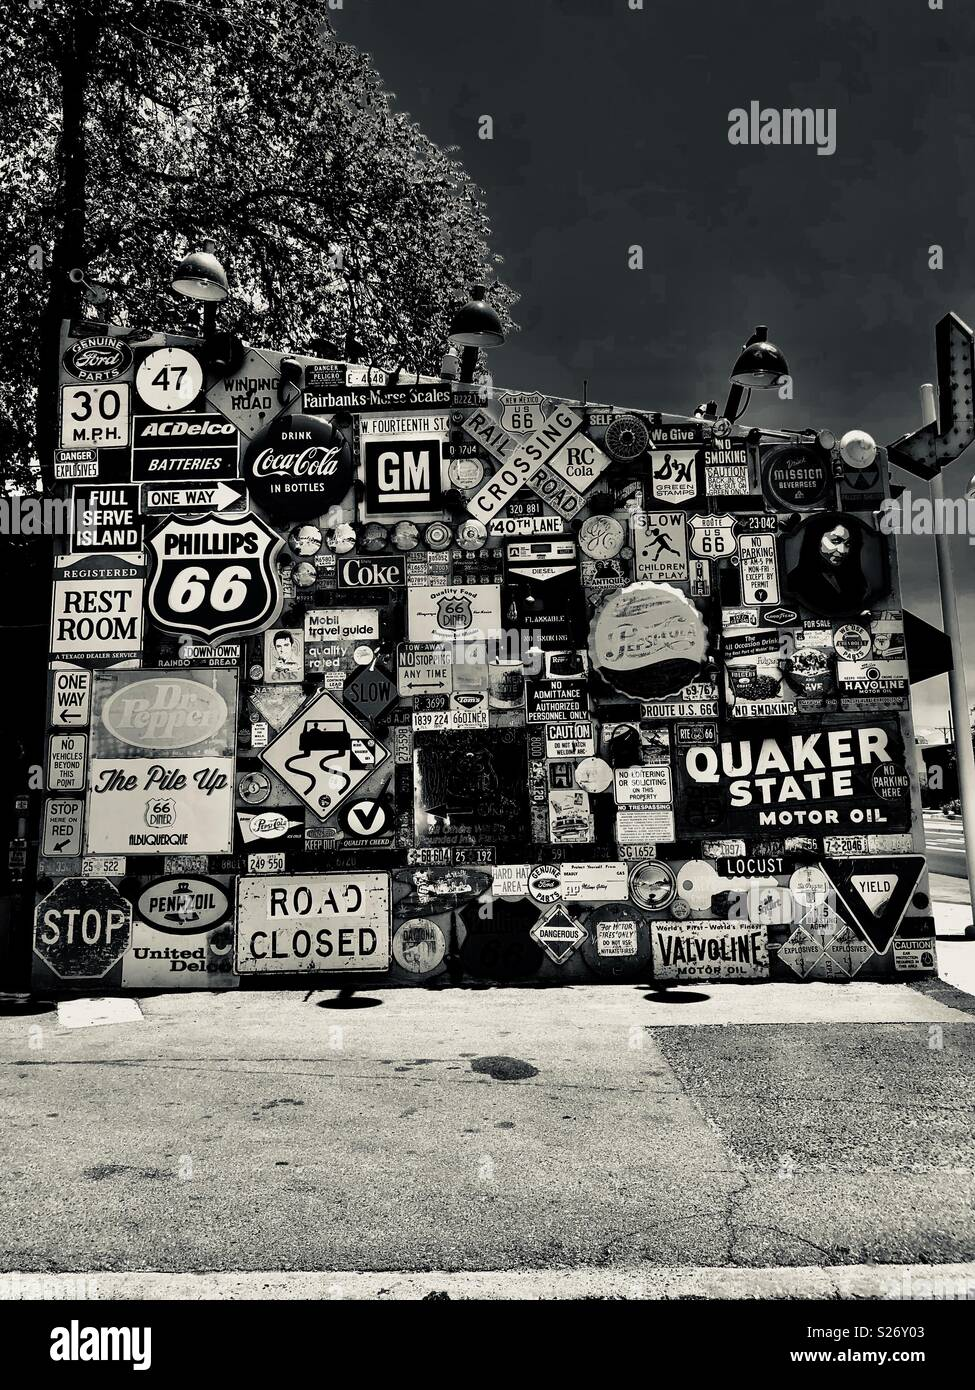 Route 66 wall in Albuquerque, New Mexico - Stock Image